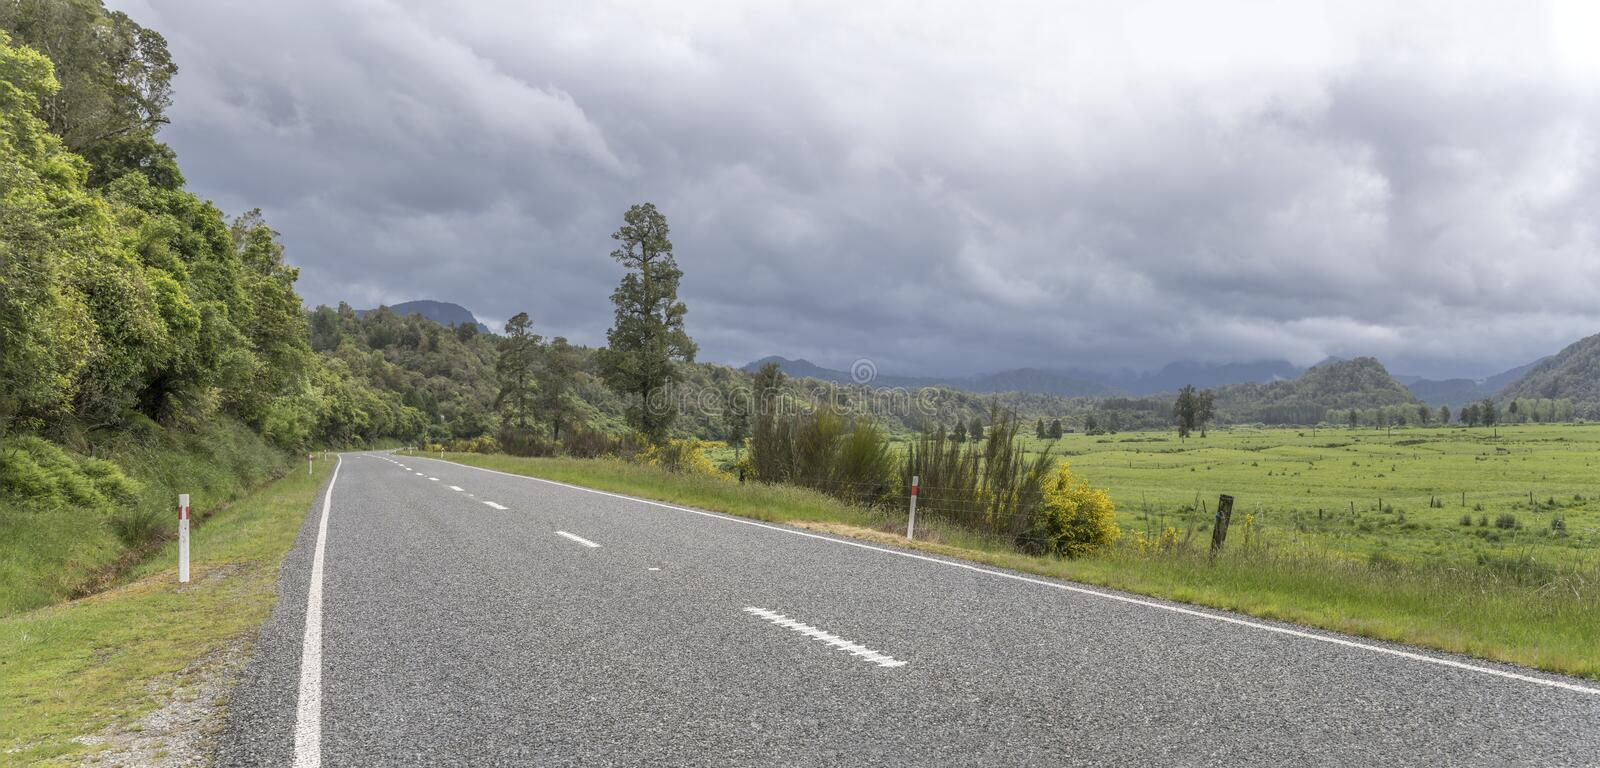 Highway 6 and green meadows under cloudy sky, near Inangahua Junction, West Coast, New Zealand. Landscape with highway 6 and green lush meadows under cloudy sky royalty free stock photos